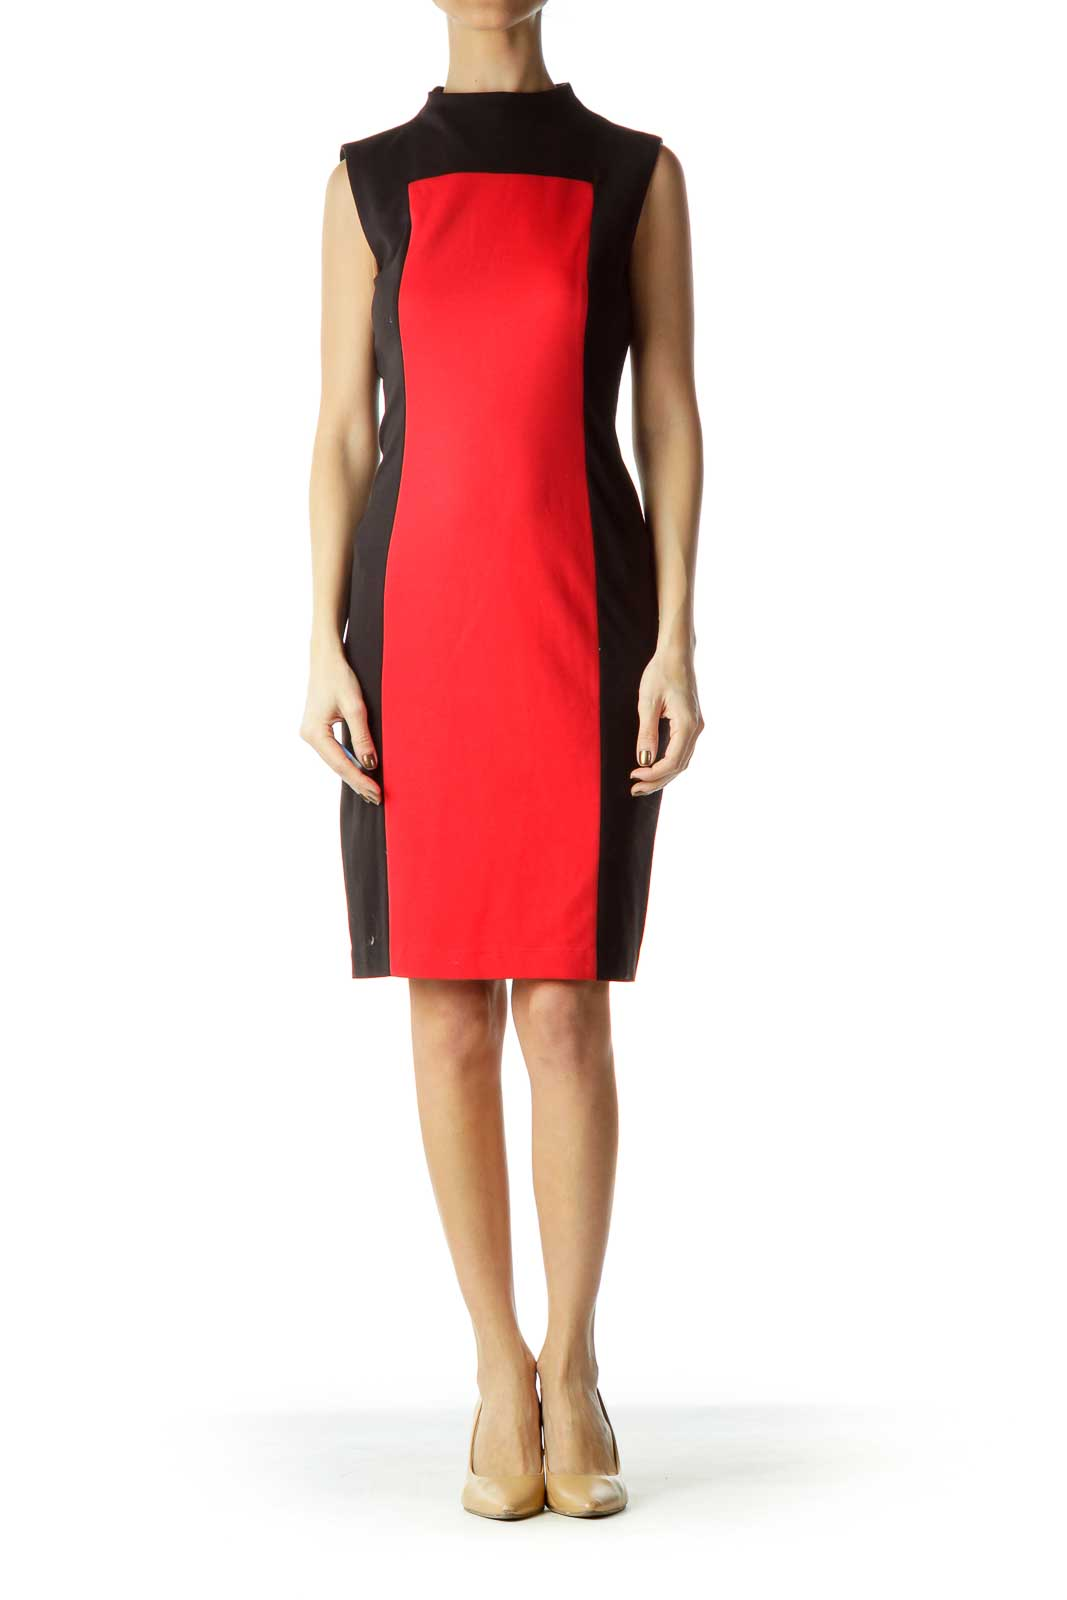 Red Black Sleeveless Colorblock Dress